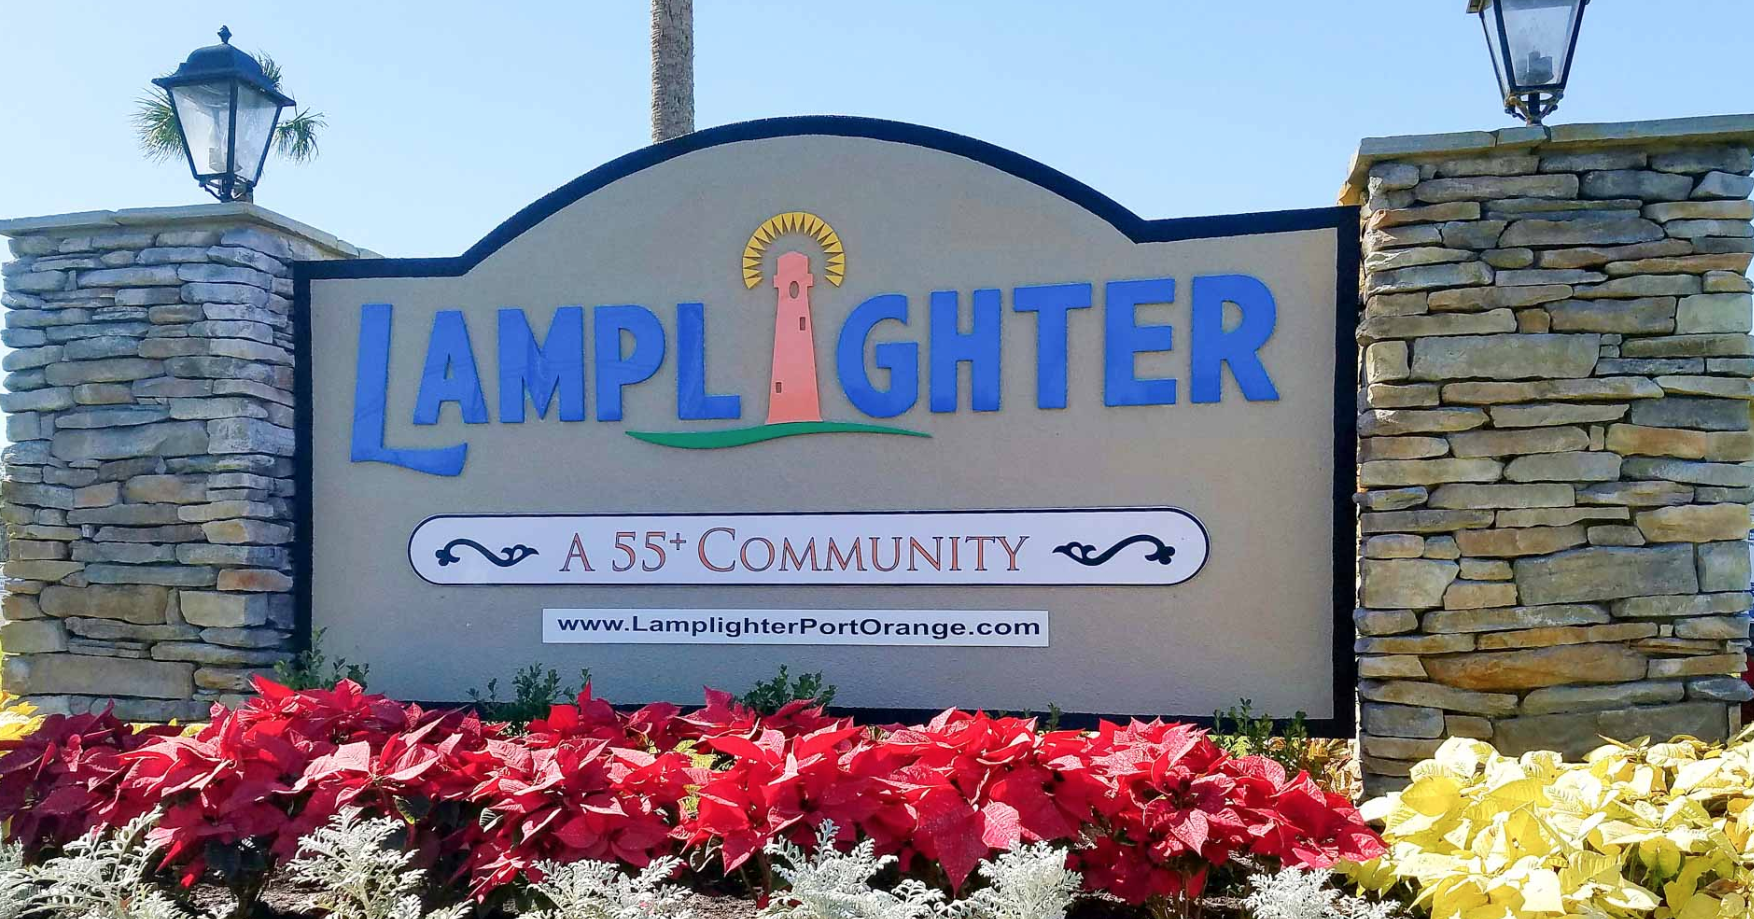 Spotlight 55+: Lamplighter